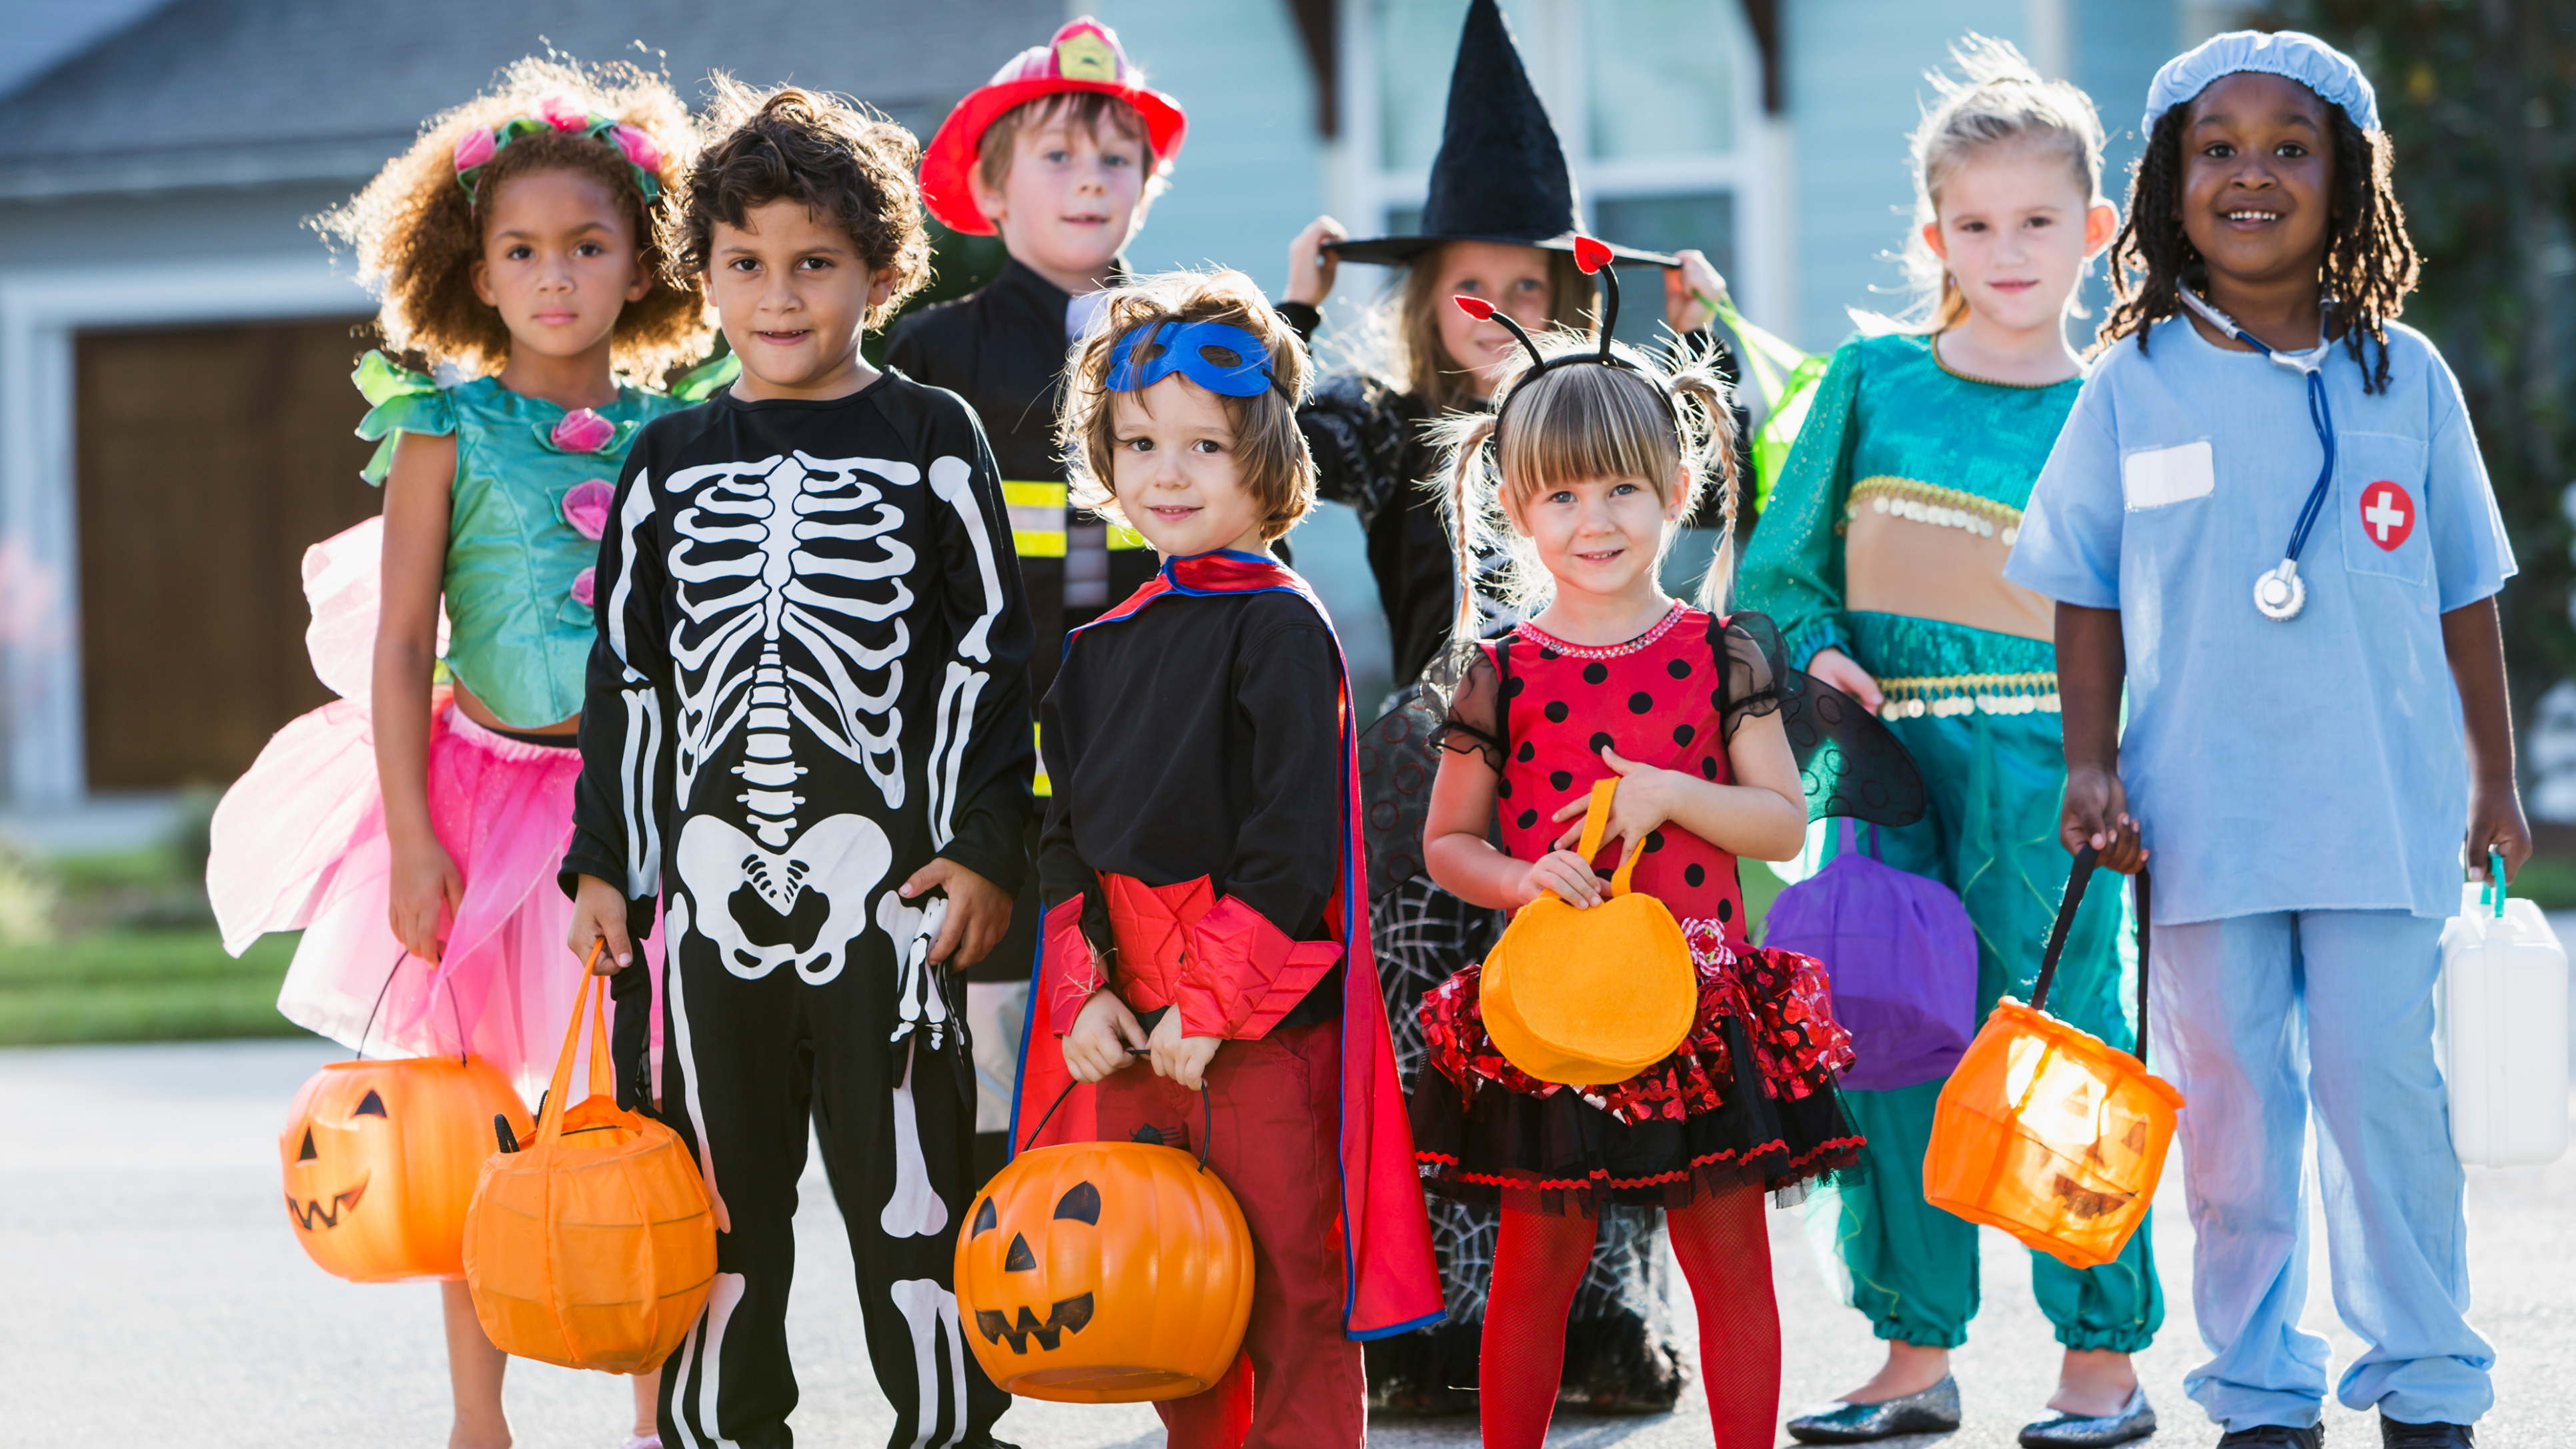 Halloween deals and free food: Here's where to find specials Thursday